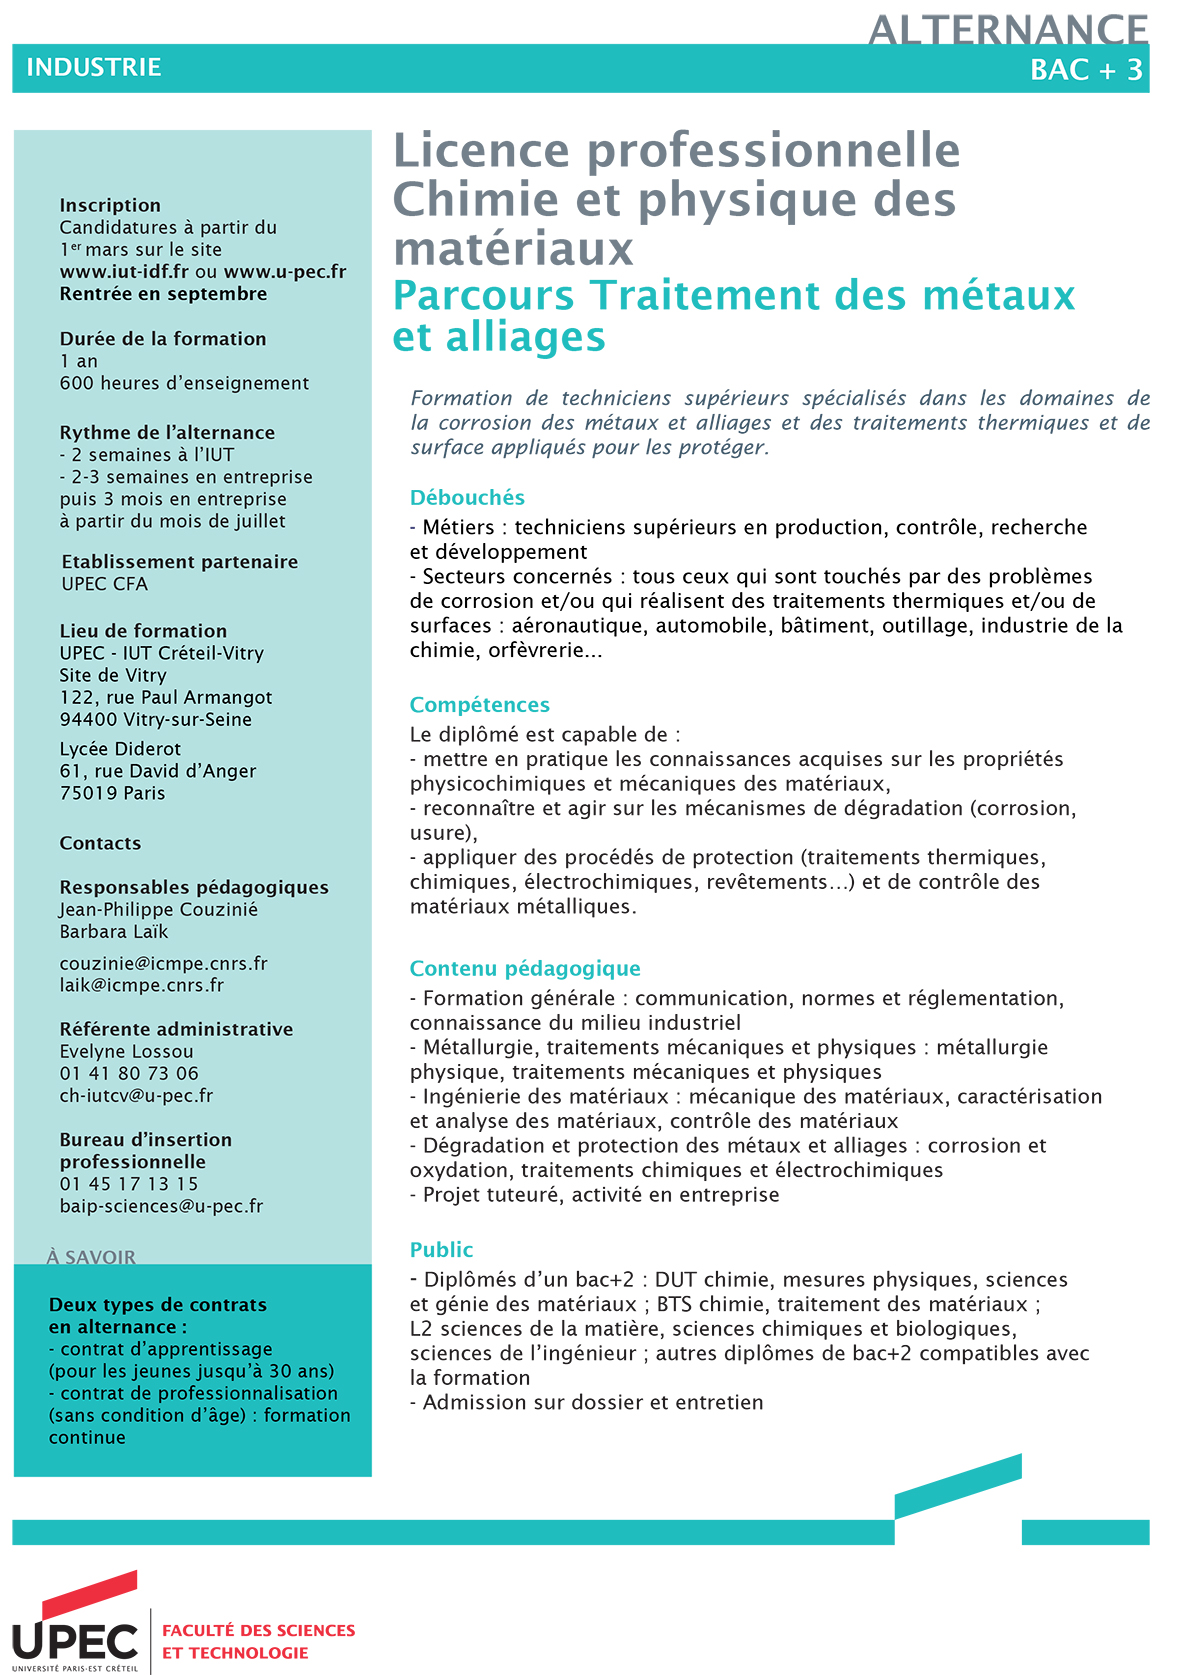 Visuel licence pro chimie